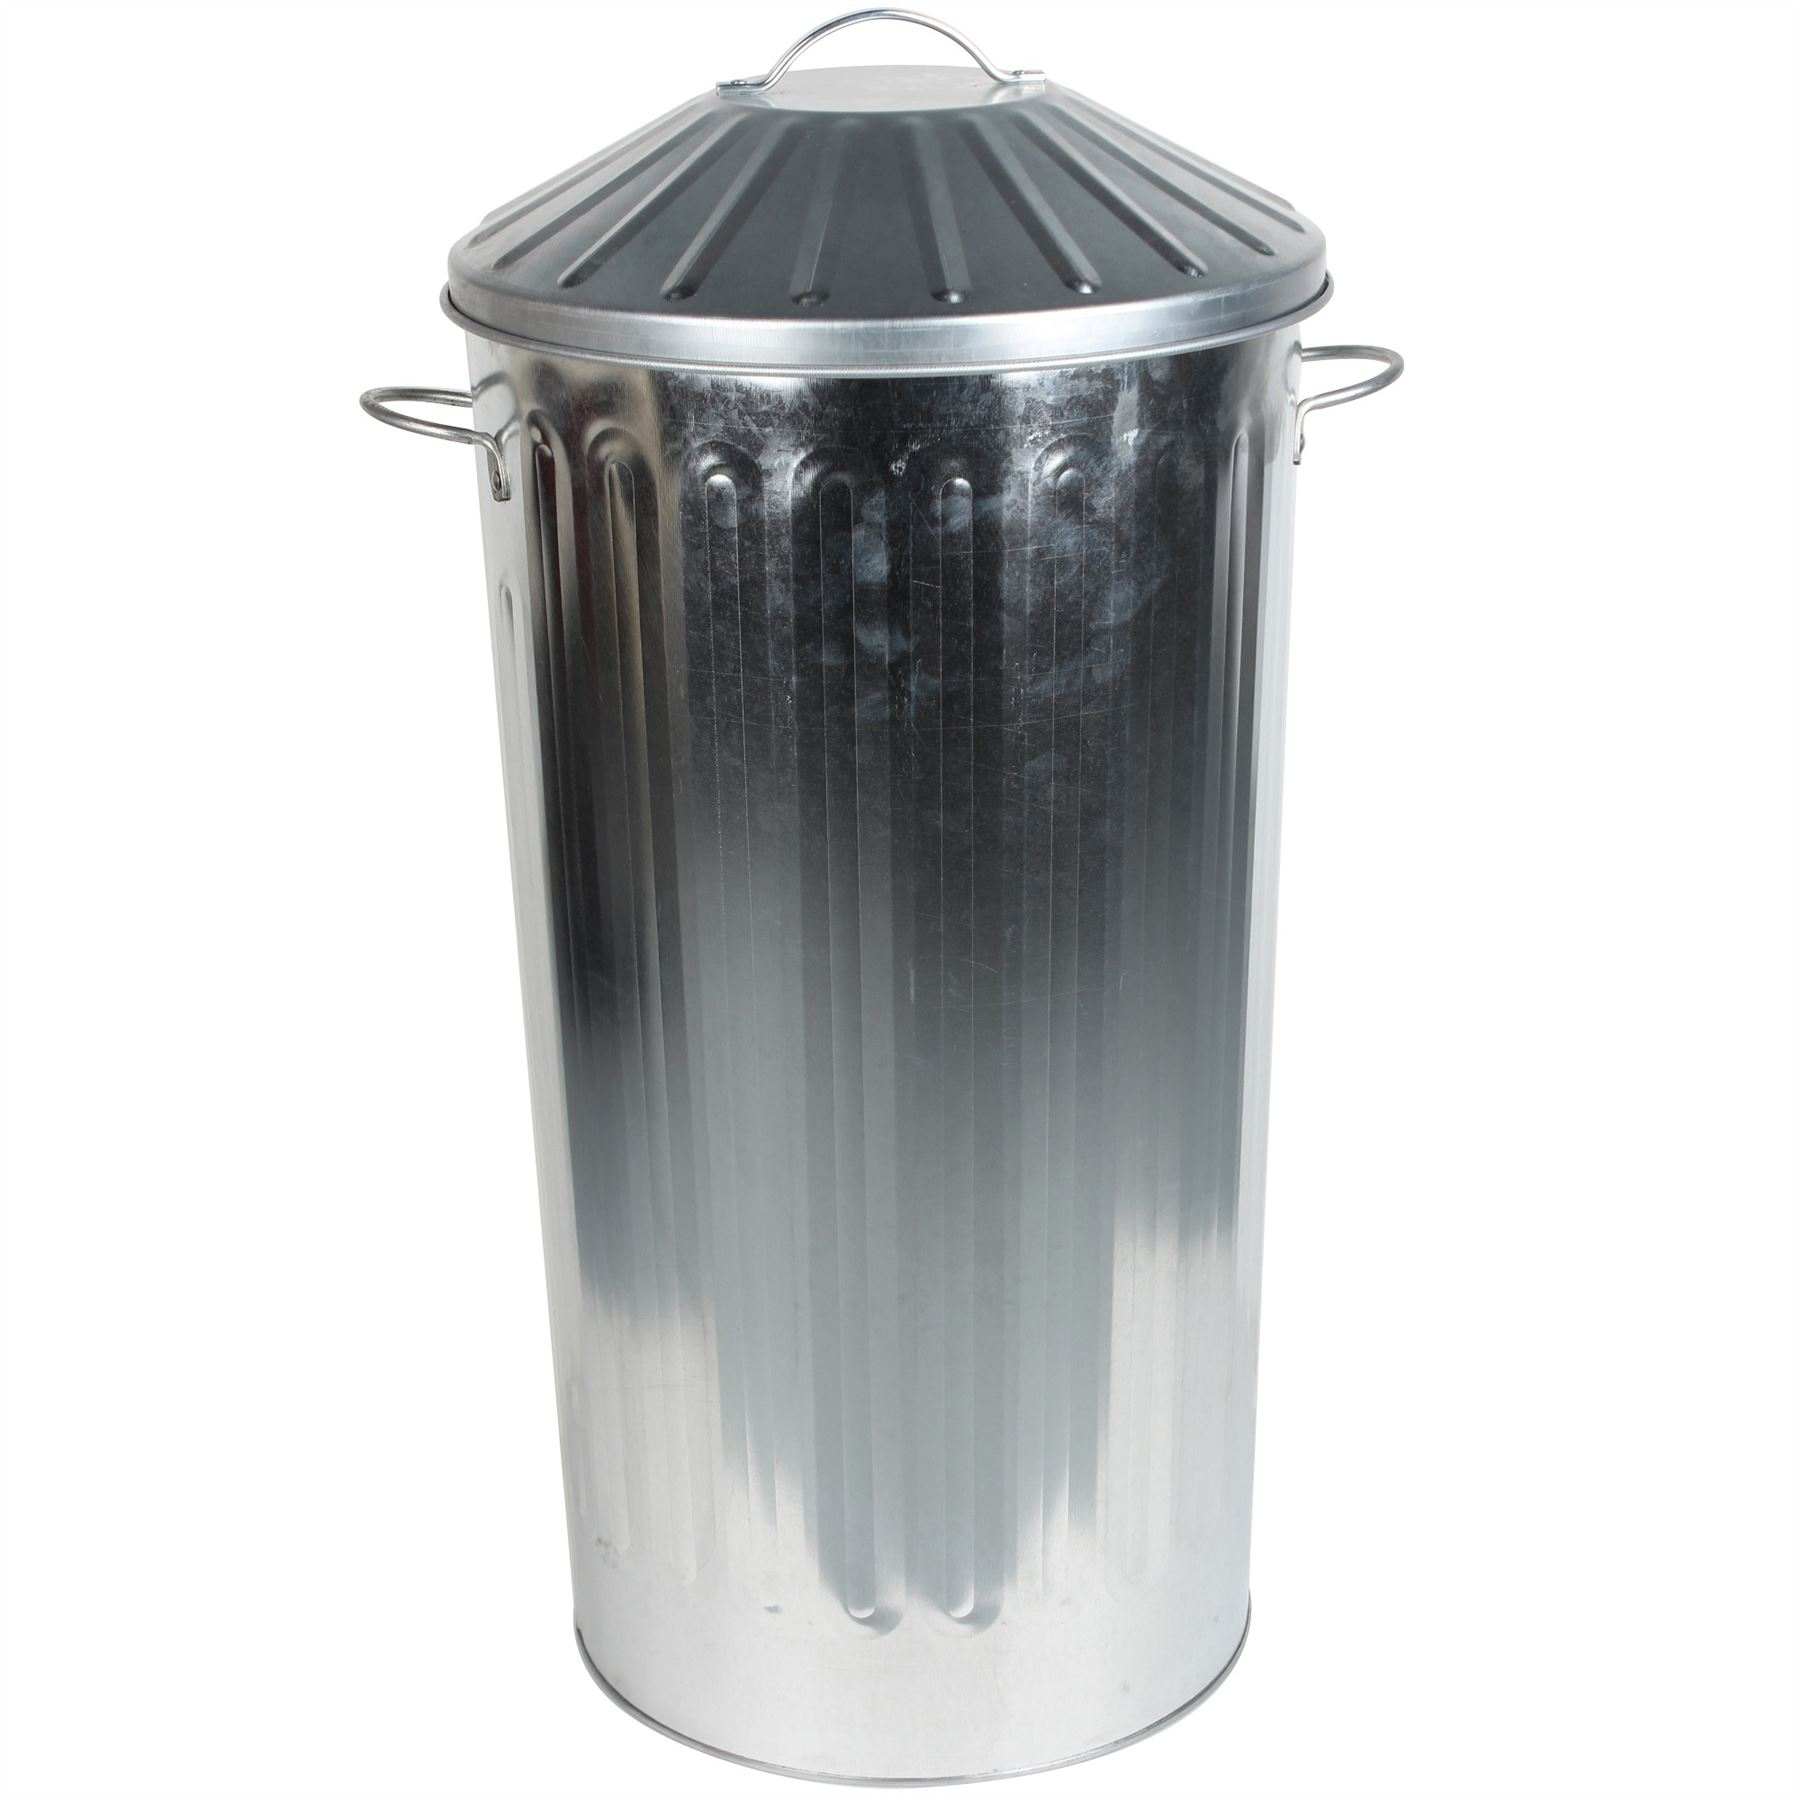 Kitchen Waste Bins: Metal 50 Litre Home Kitchen Colour Recycle Dustbin Rubbish